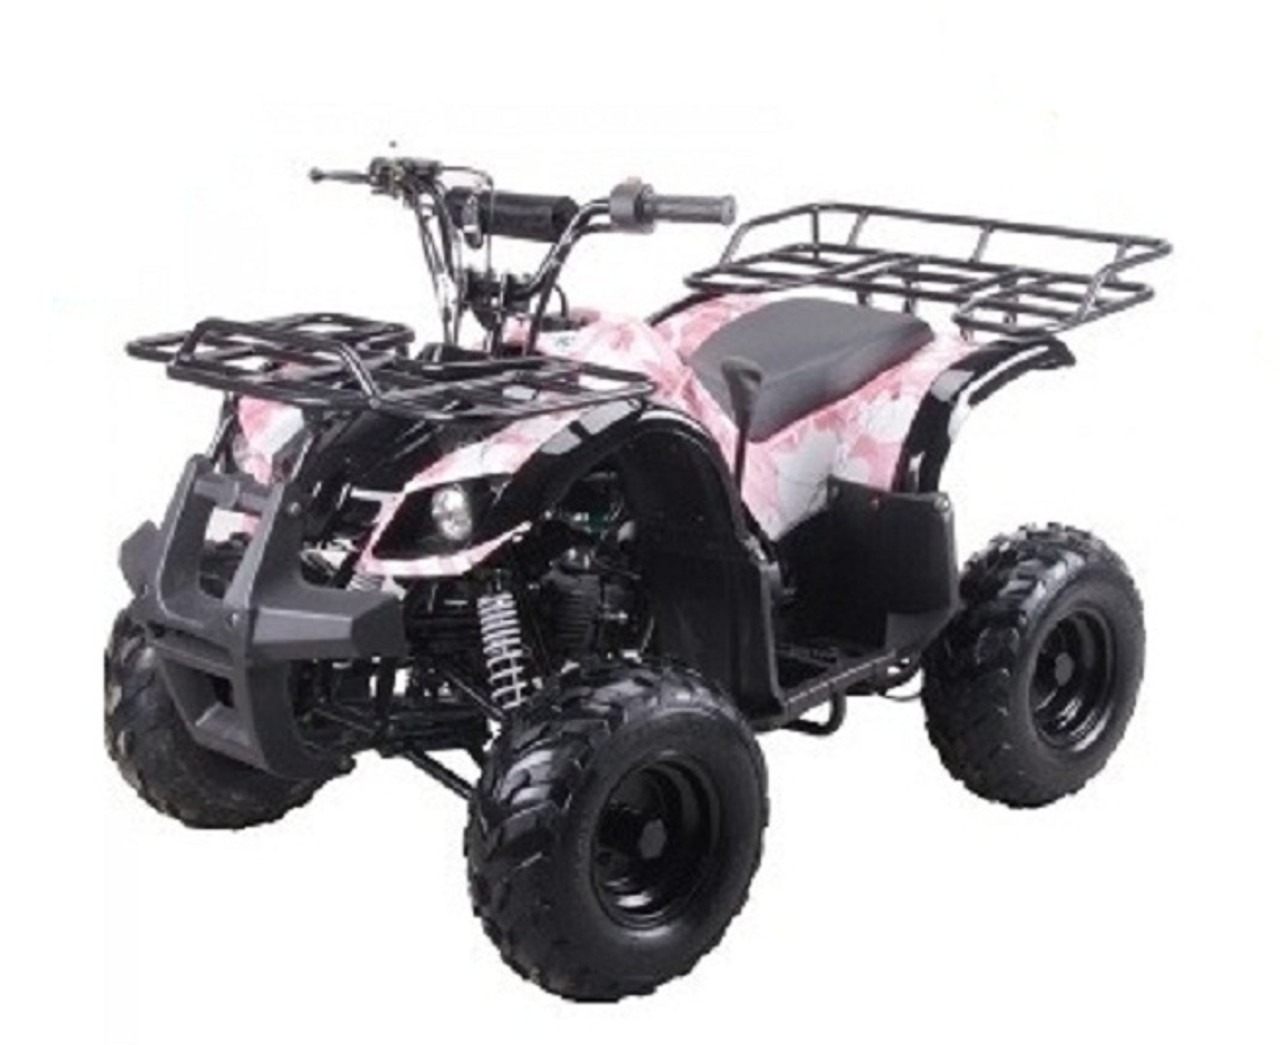 """Coolster 3125R KODIAK-HD 125CC ATV Big 16"""" Tire, Single Cylinder, 4-Stroke, Air-Cooled  w/Reverse - Fully Assembled and Tested"""